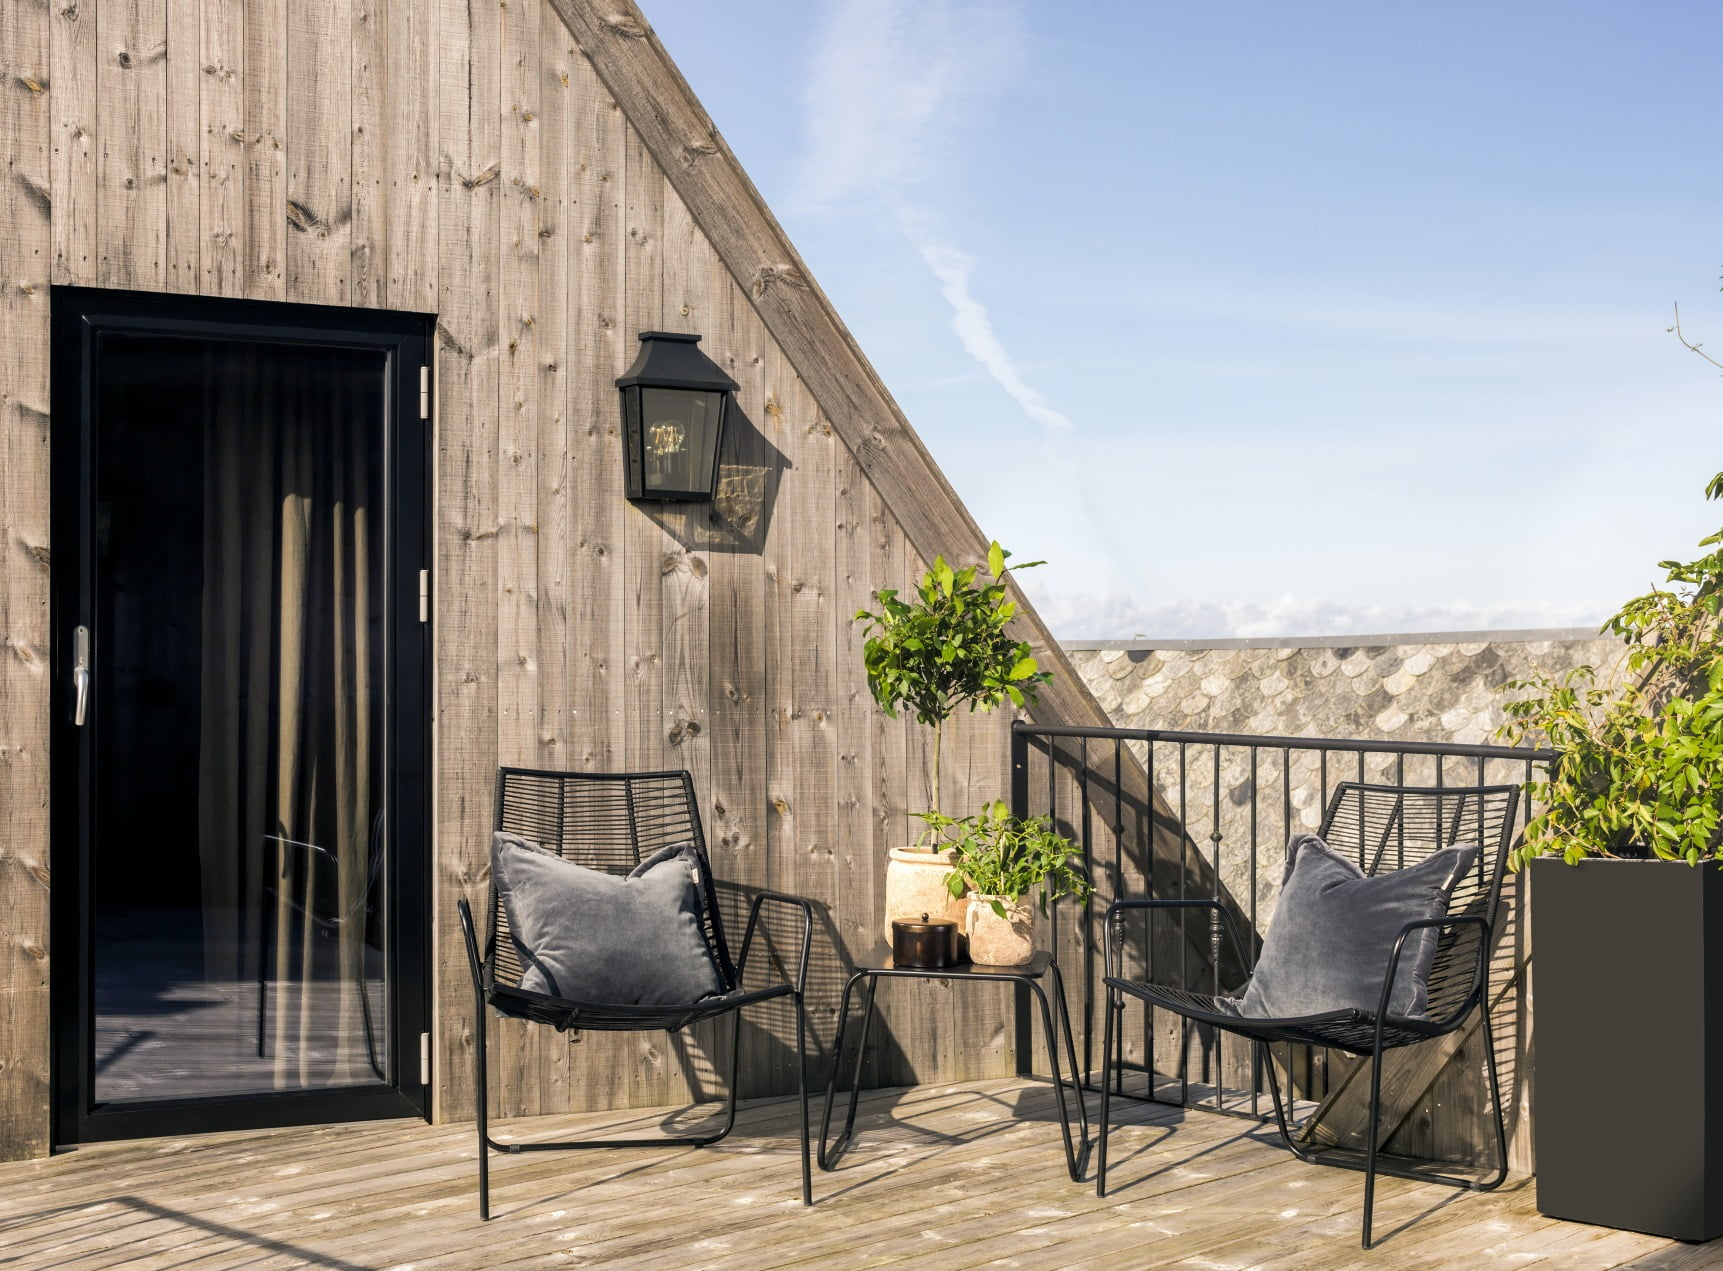 Interior design, Outdoor furniture, Sky, Property, Cloud, Plant, Building, Wood, Shade